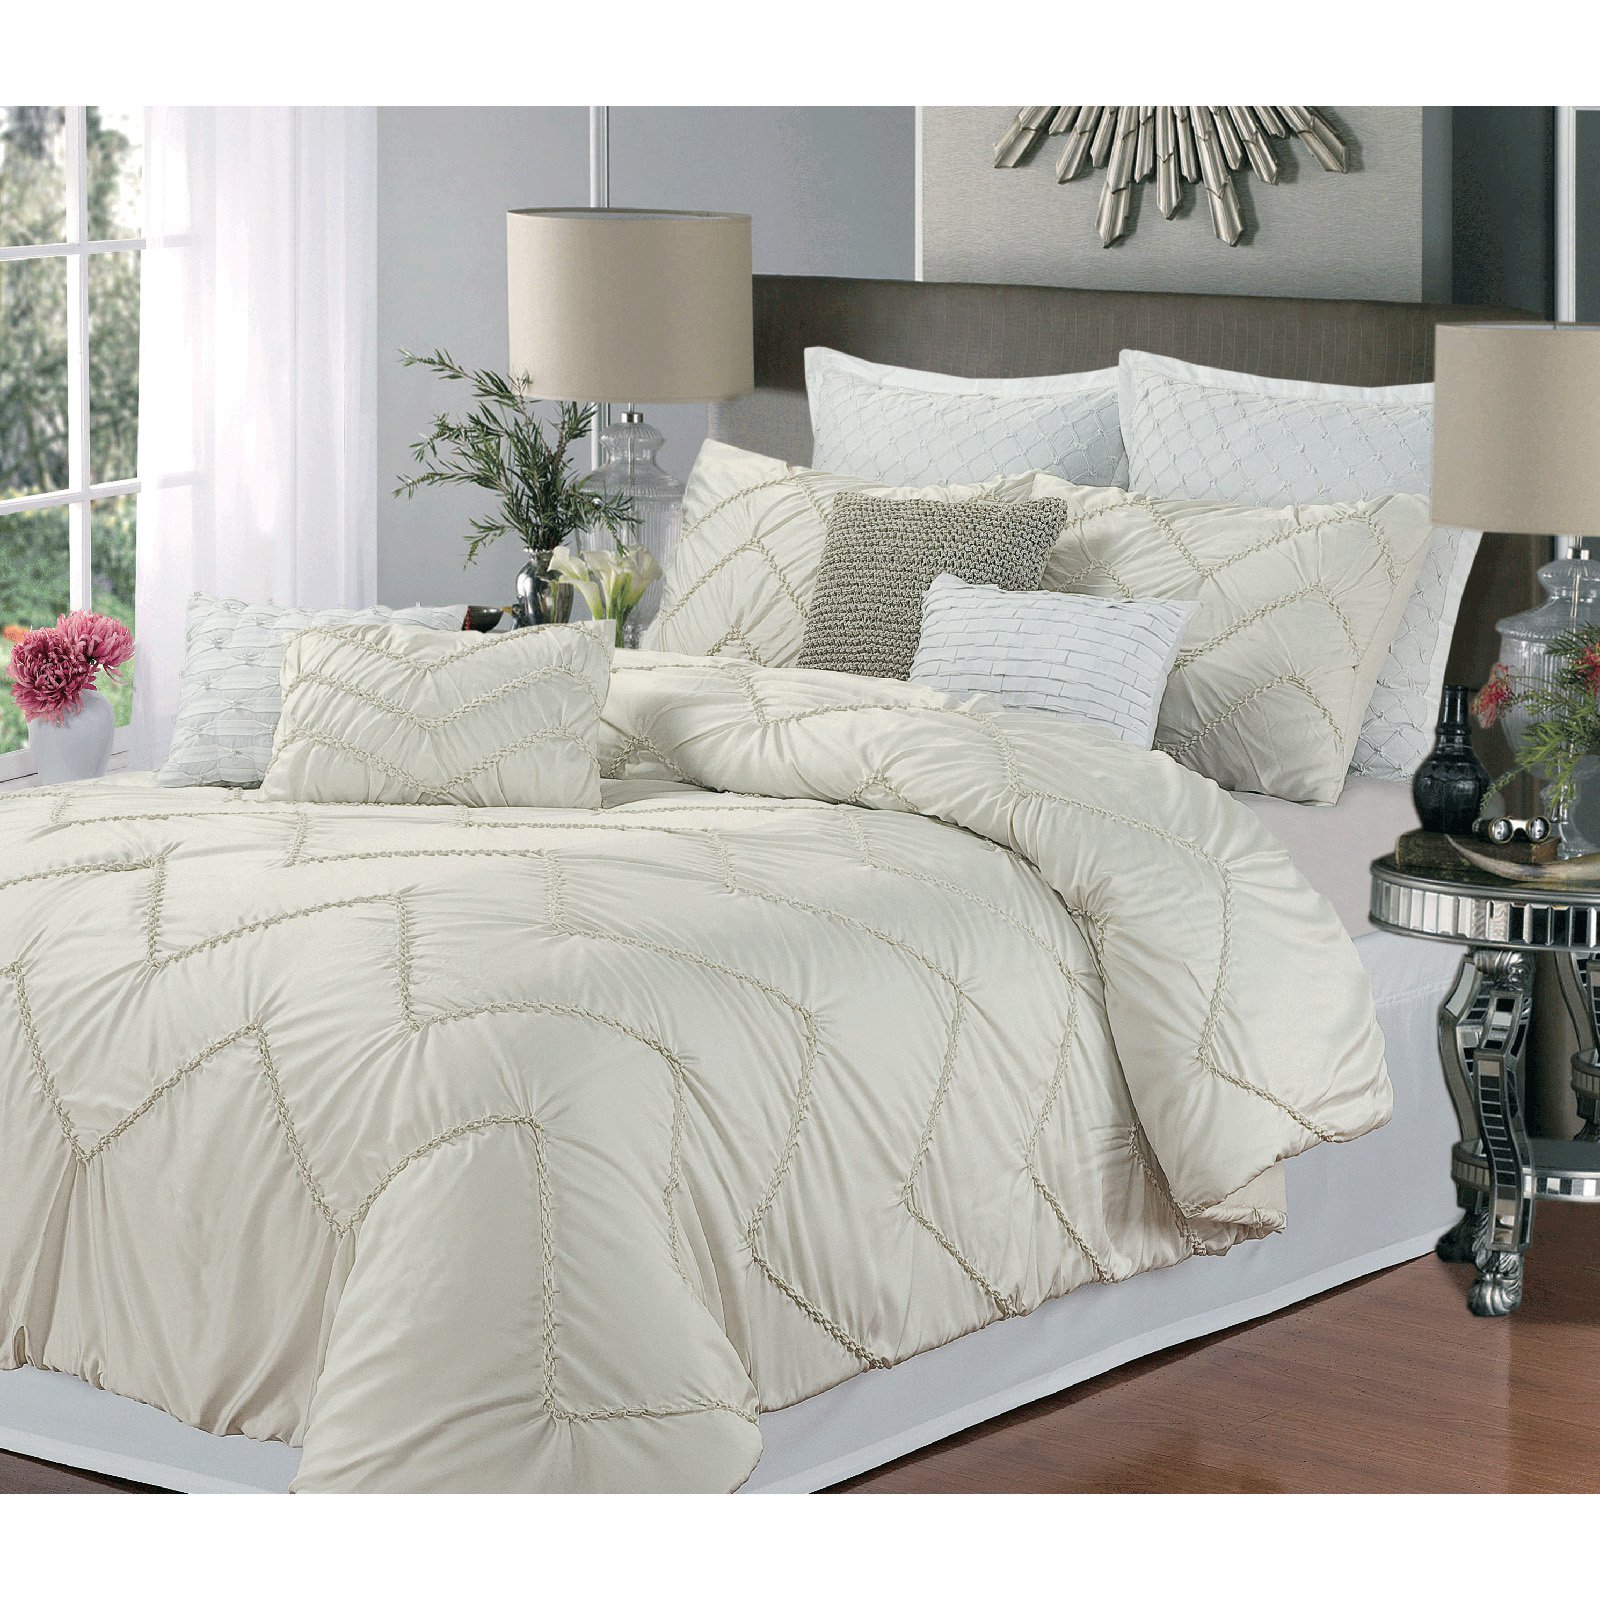 comforters comforter beautiful design queen sets bedroom beige set for with dazzling